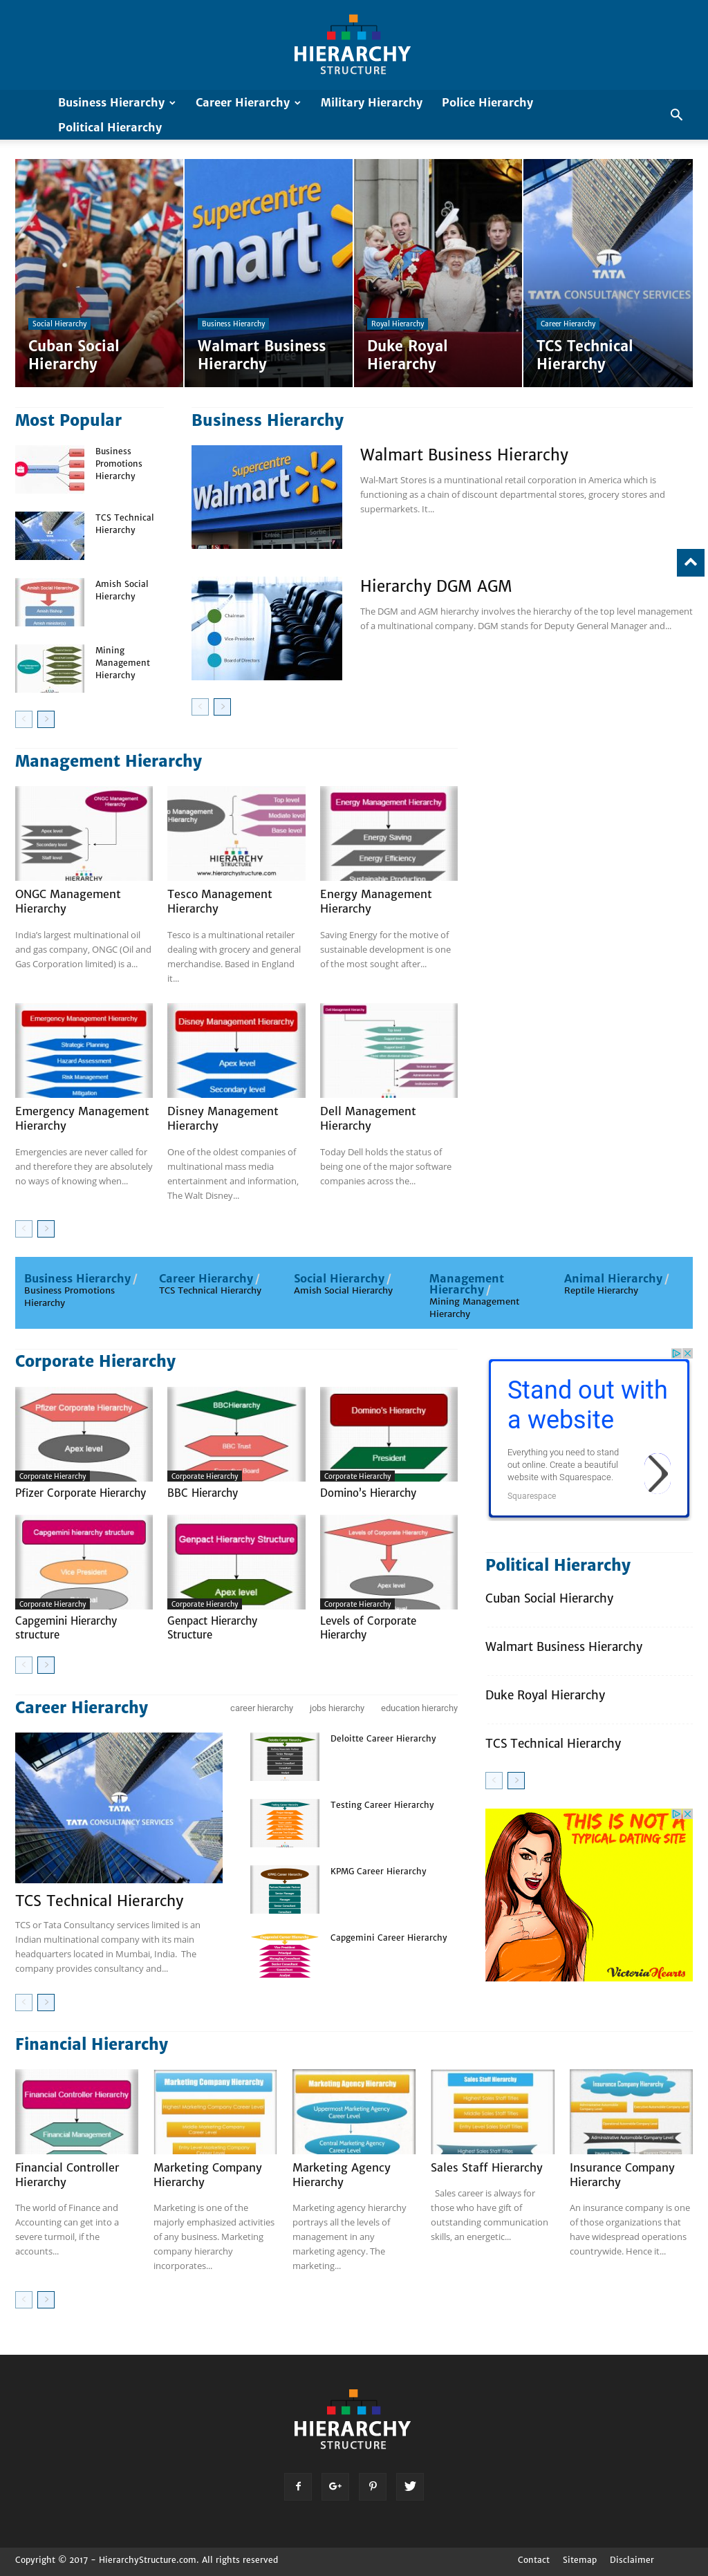 Hierarchy Structure Competitors, Revenue and Employees